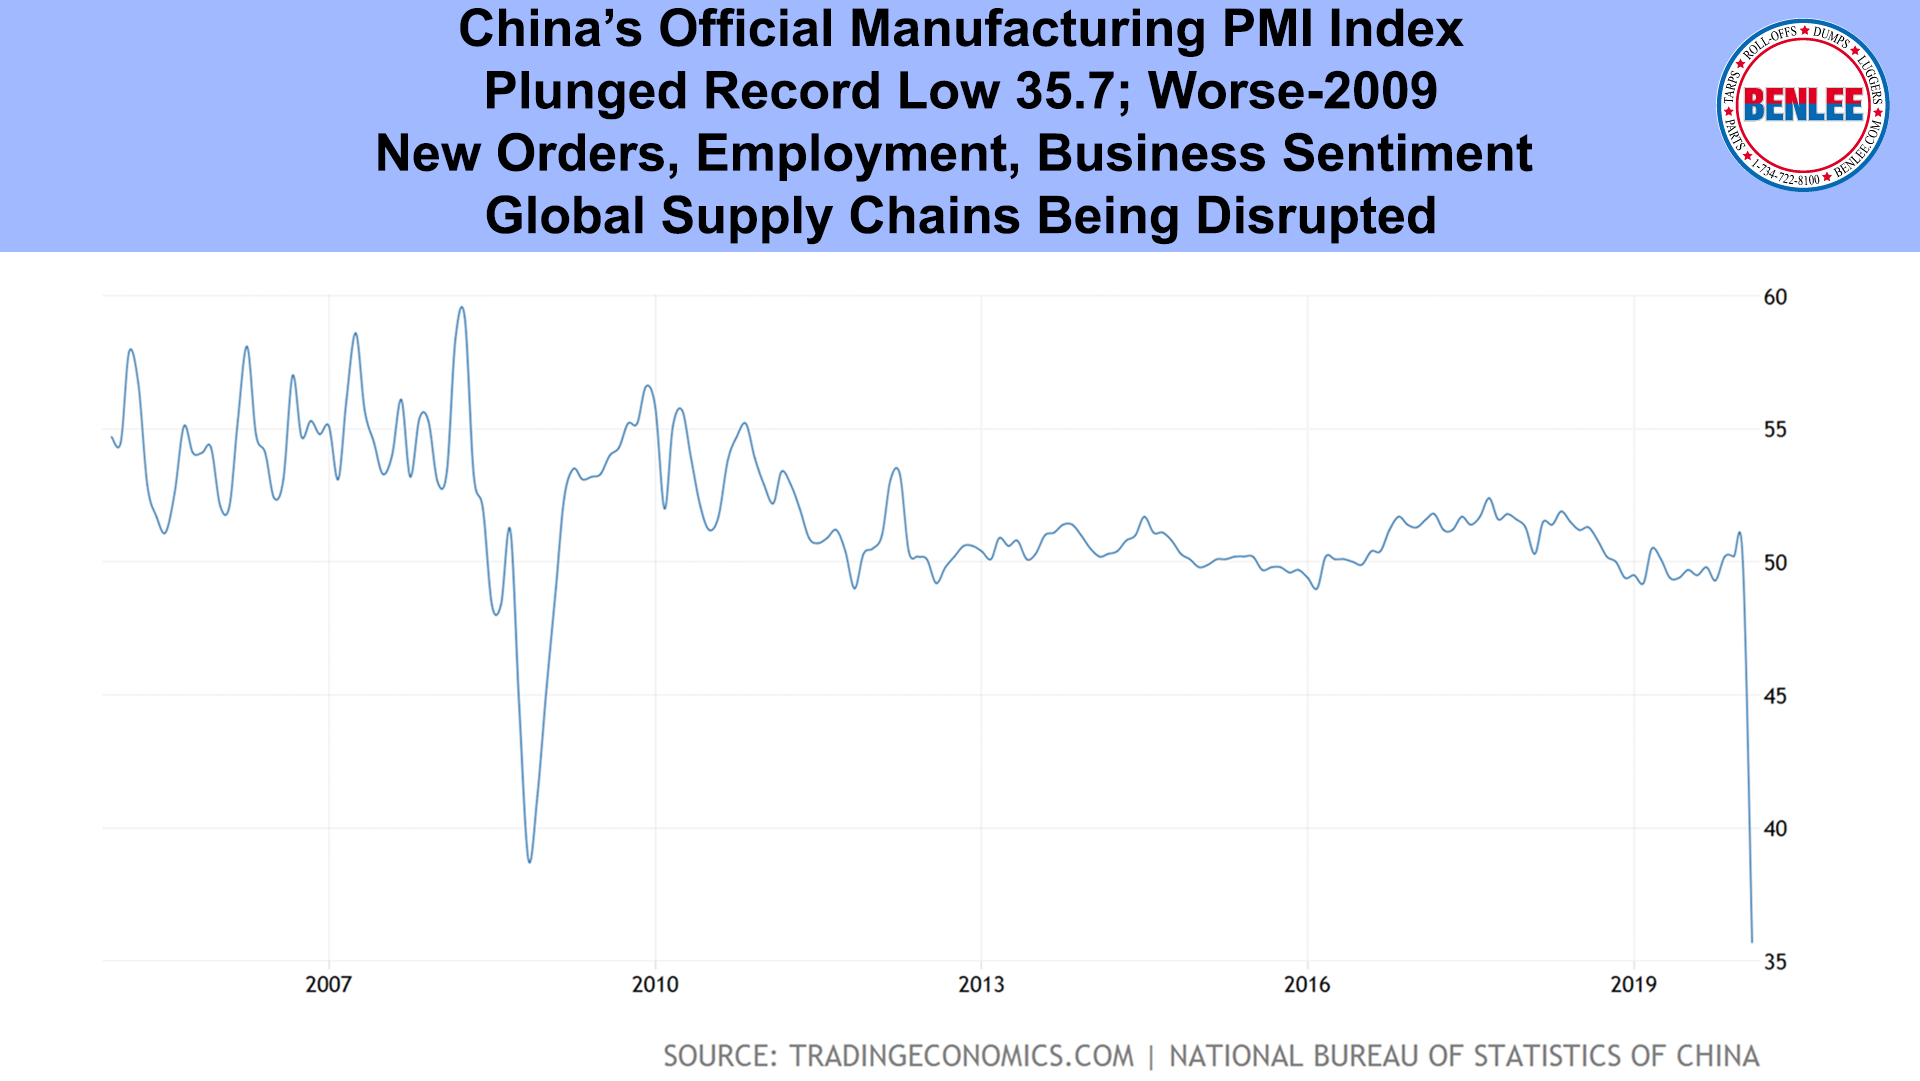 China's Official Manufacturing PMI Index